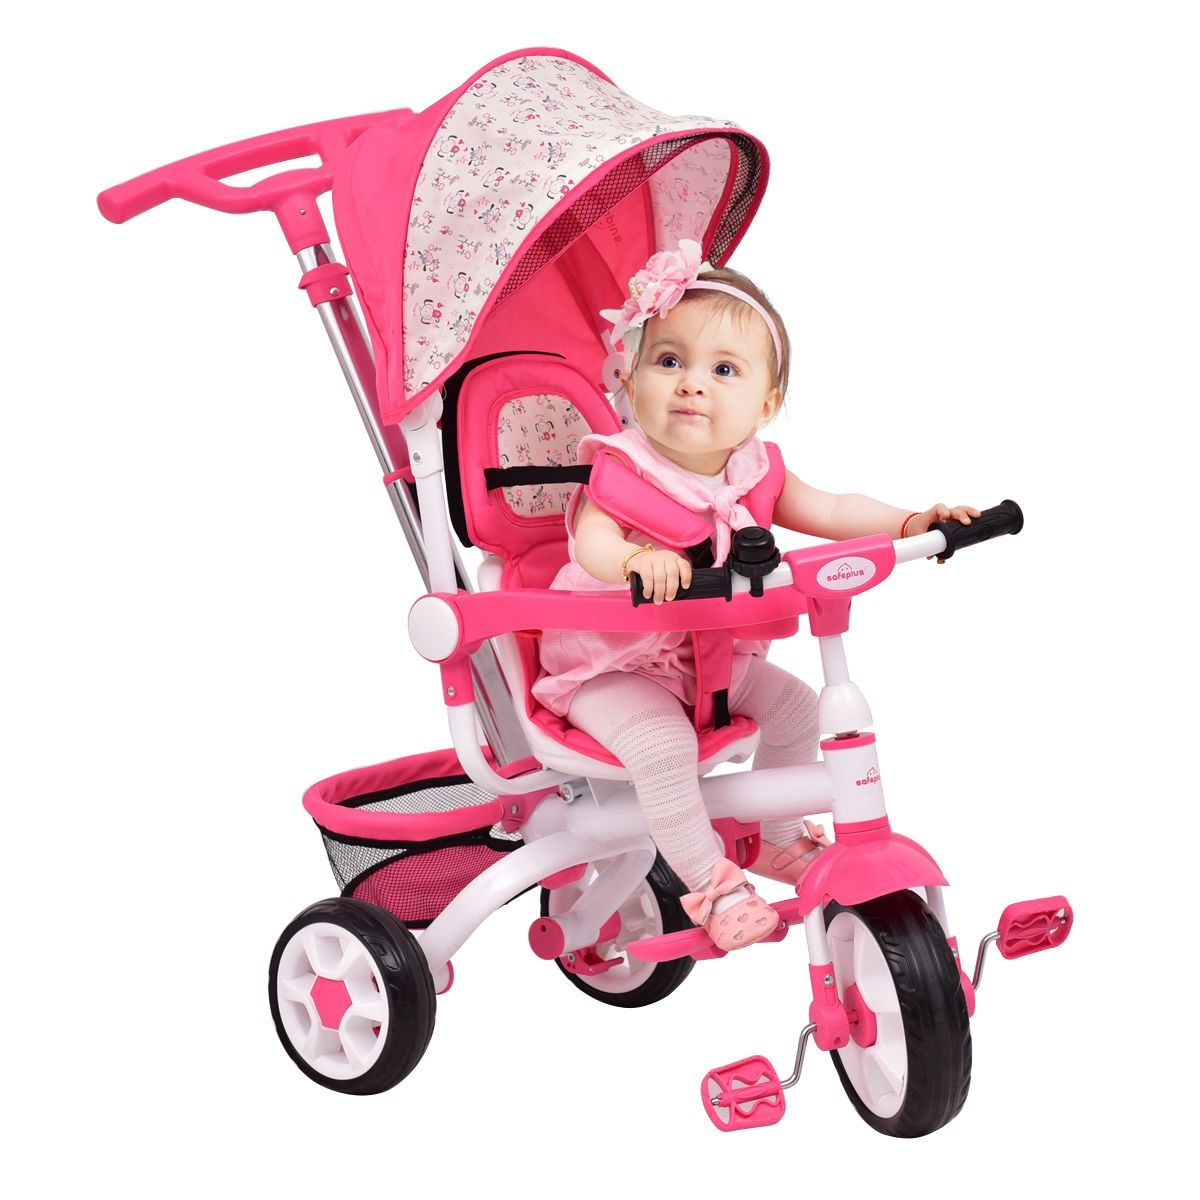 4 In 1 Detachable Baby Stroller Tricycle With Round Canopy Baby